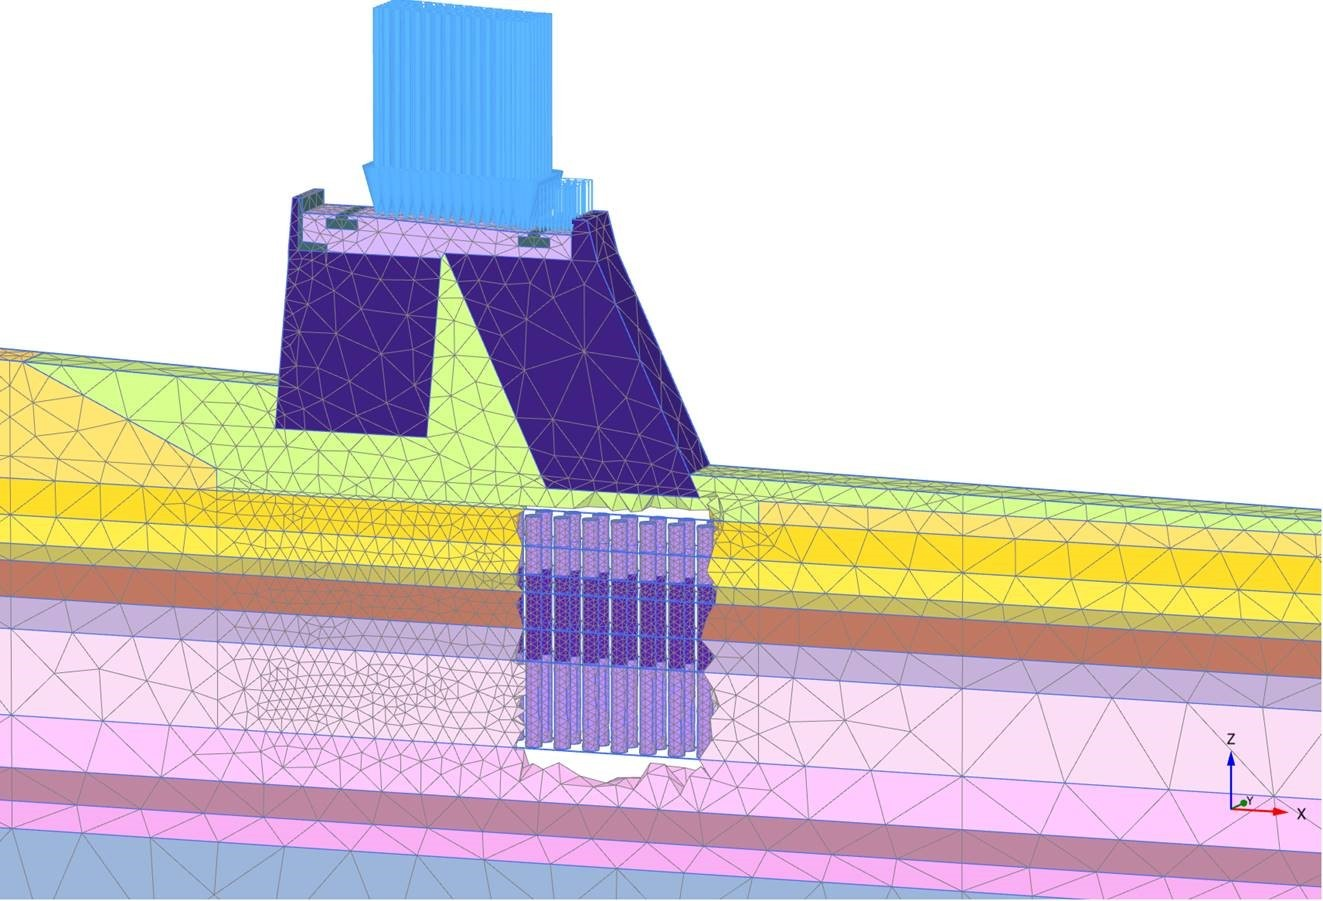 When users share their experience with PLAXIS, 3D geotechnical engineering software